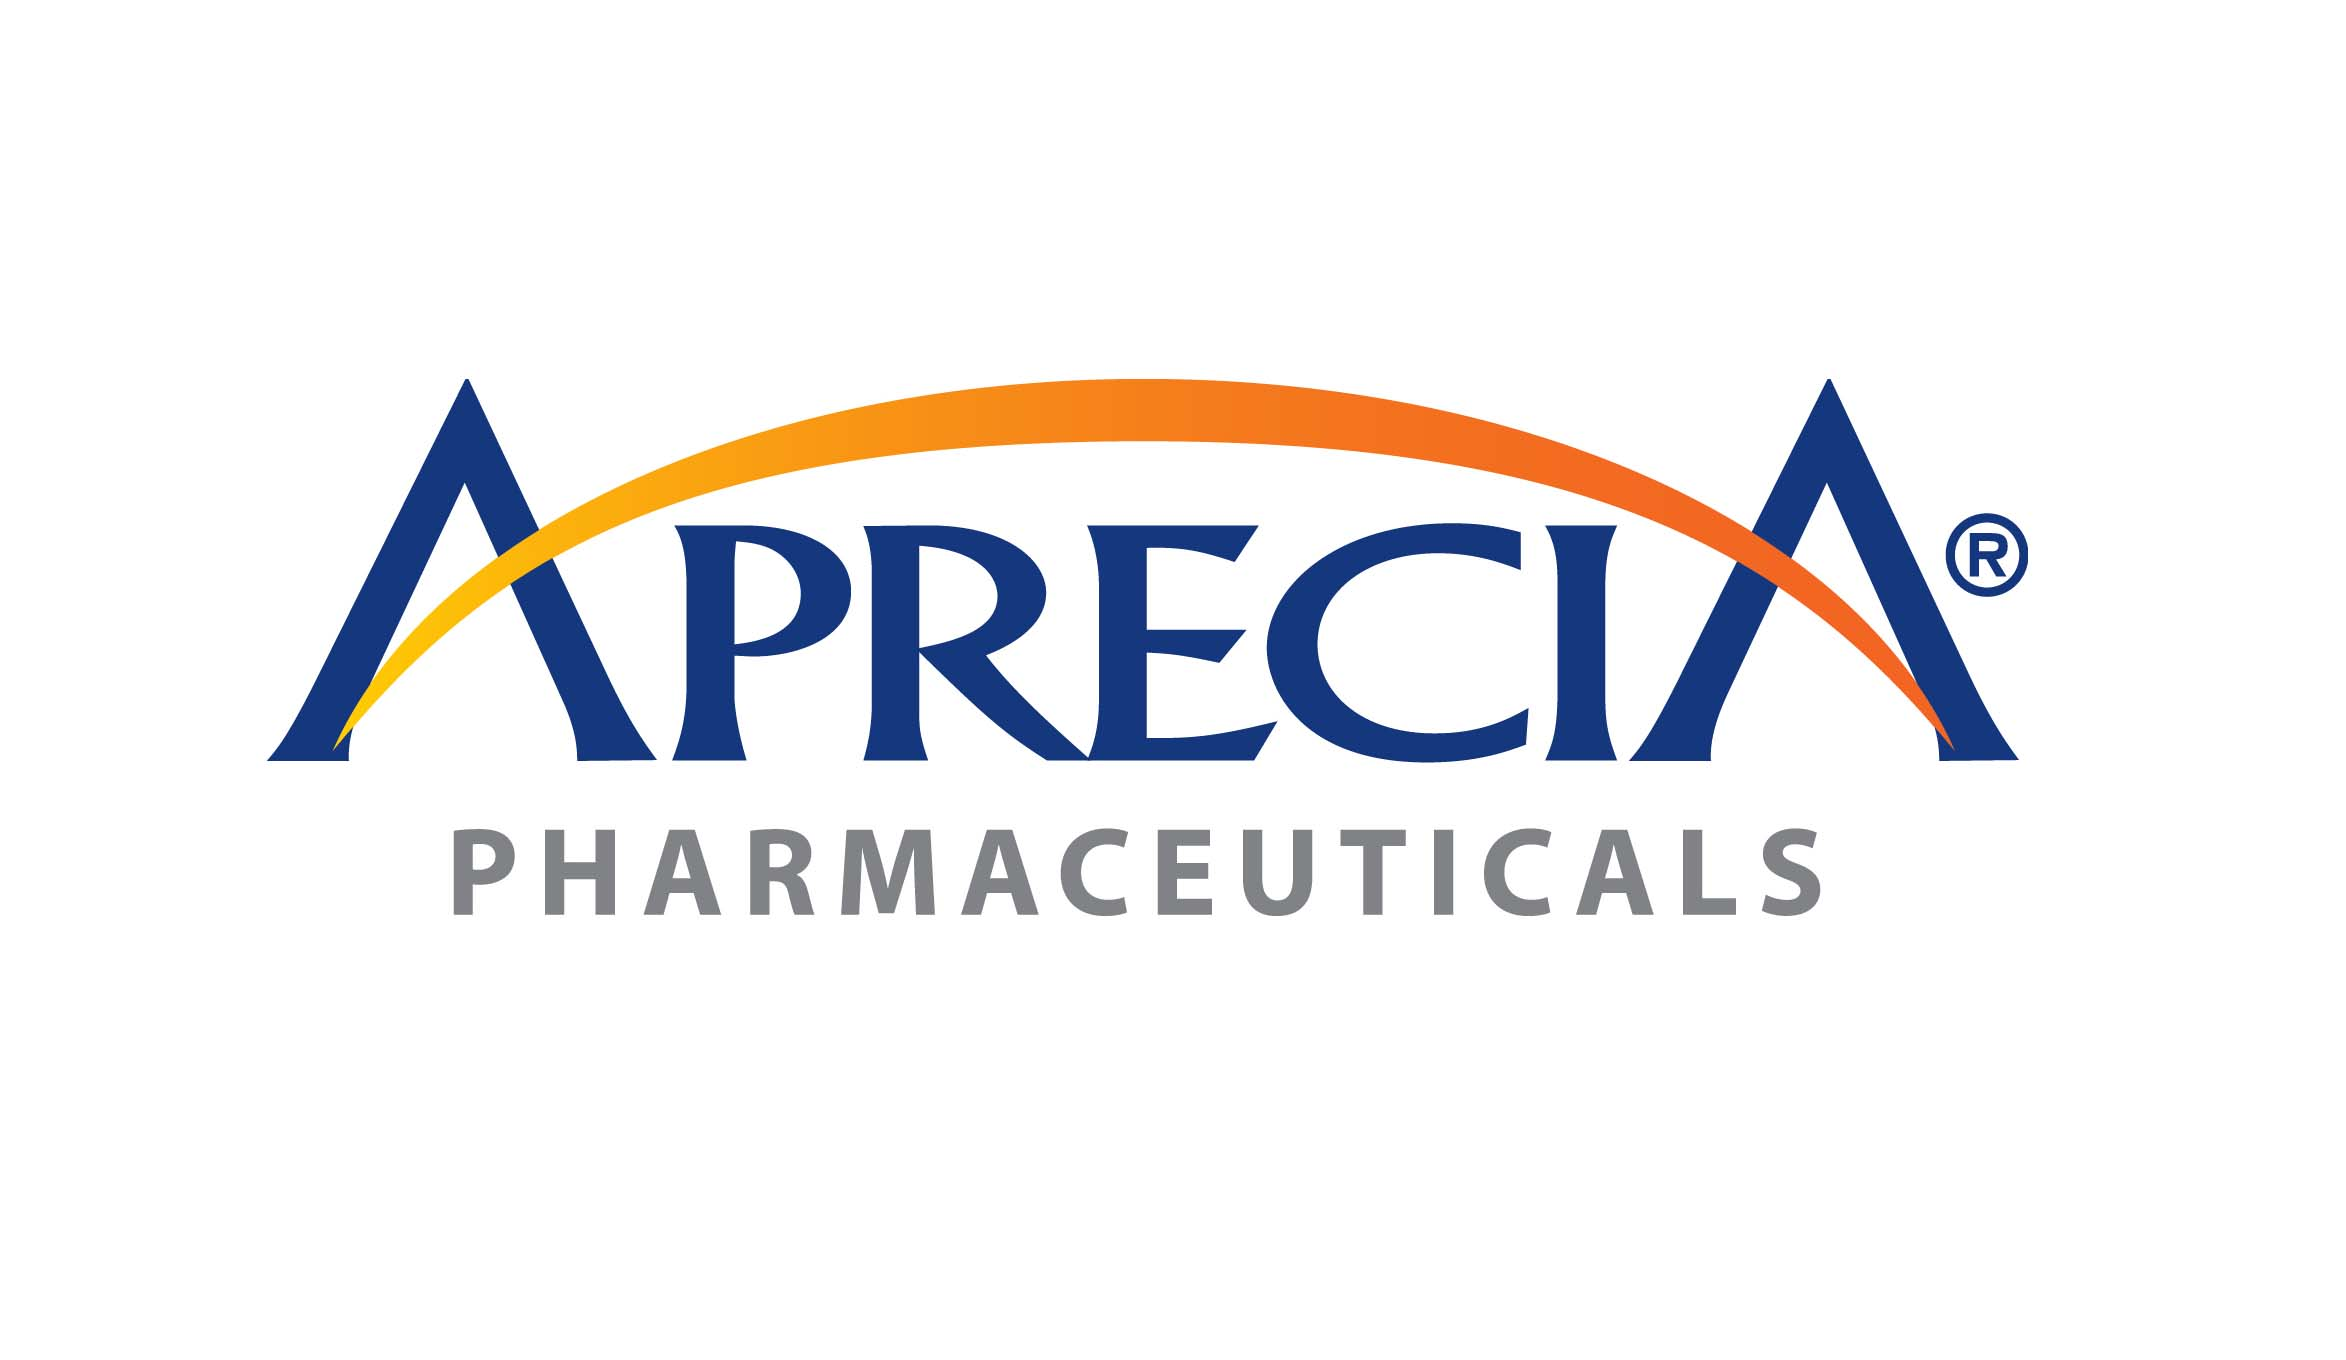 Aprecia Pharmaceuticals corporate logo